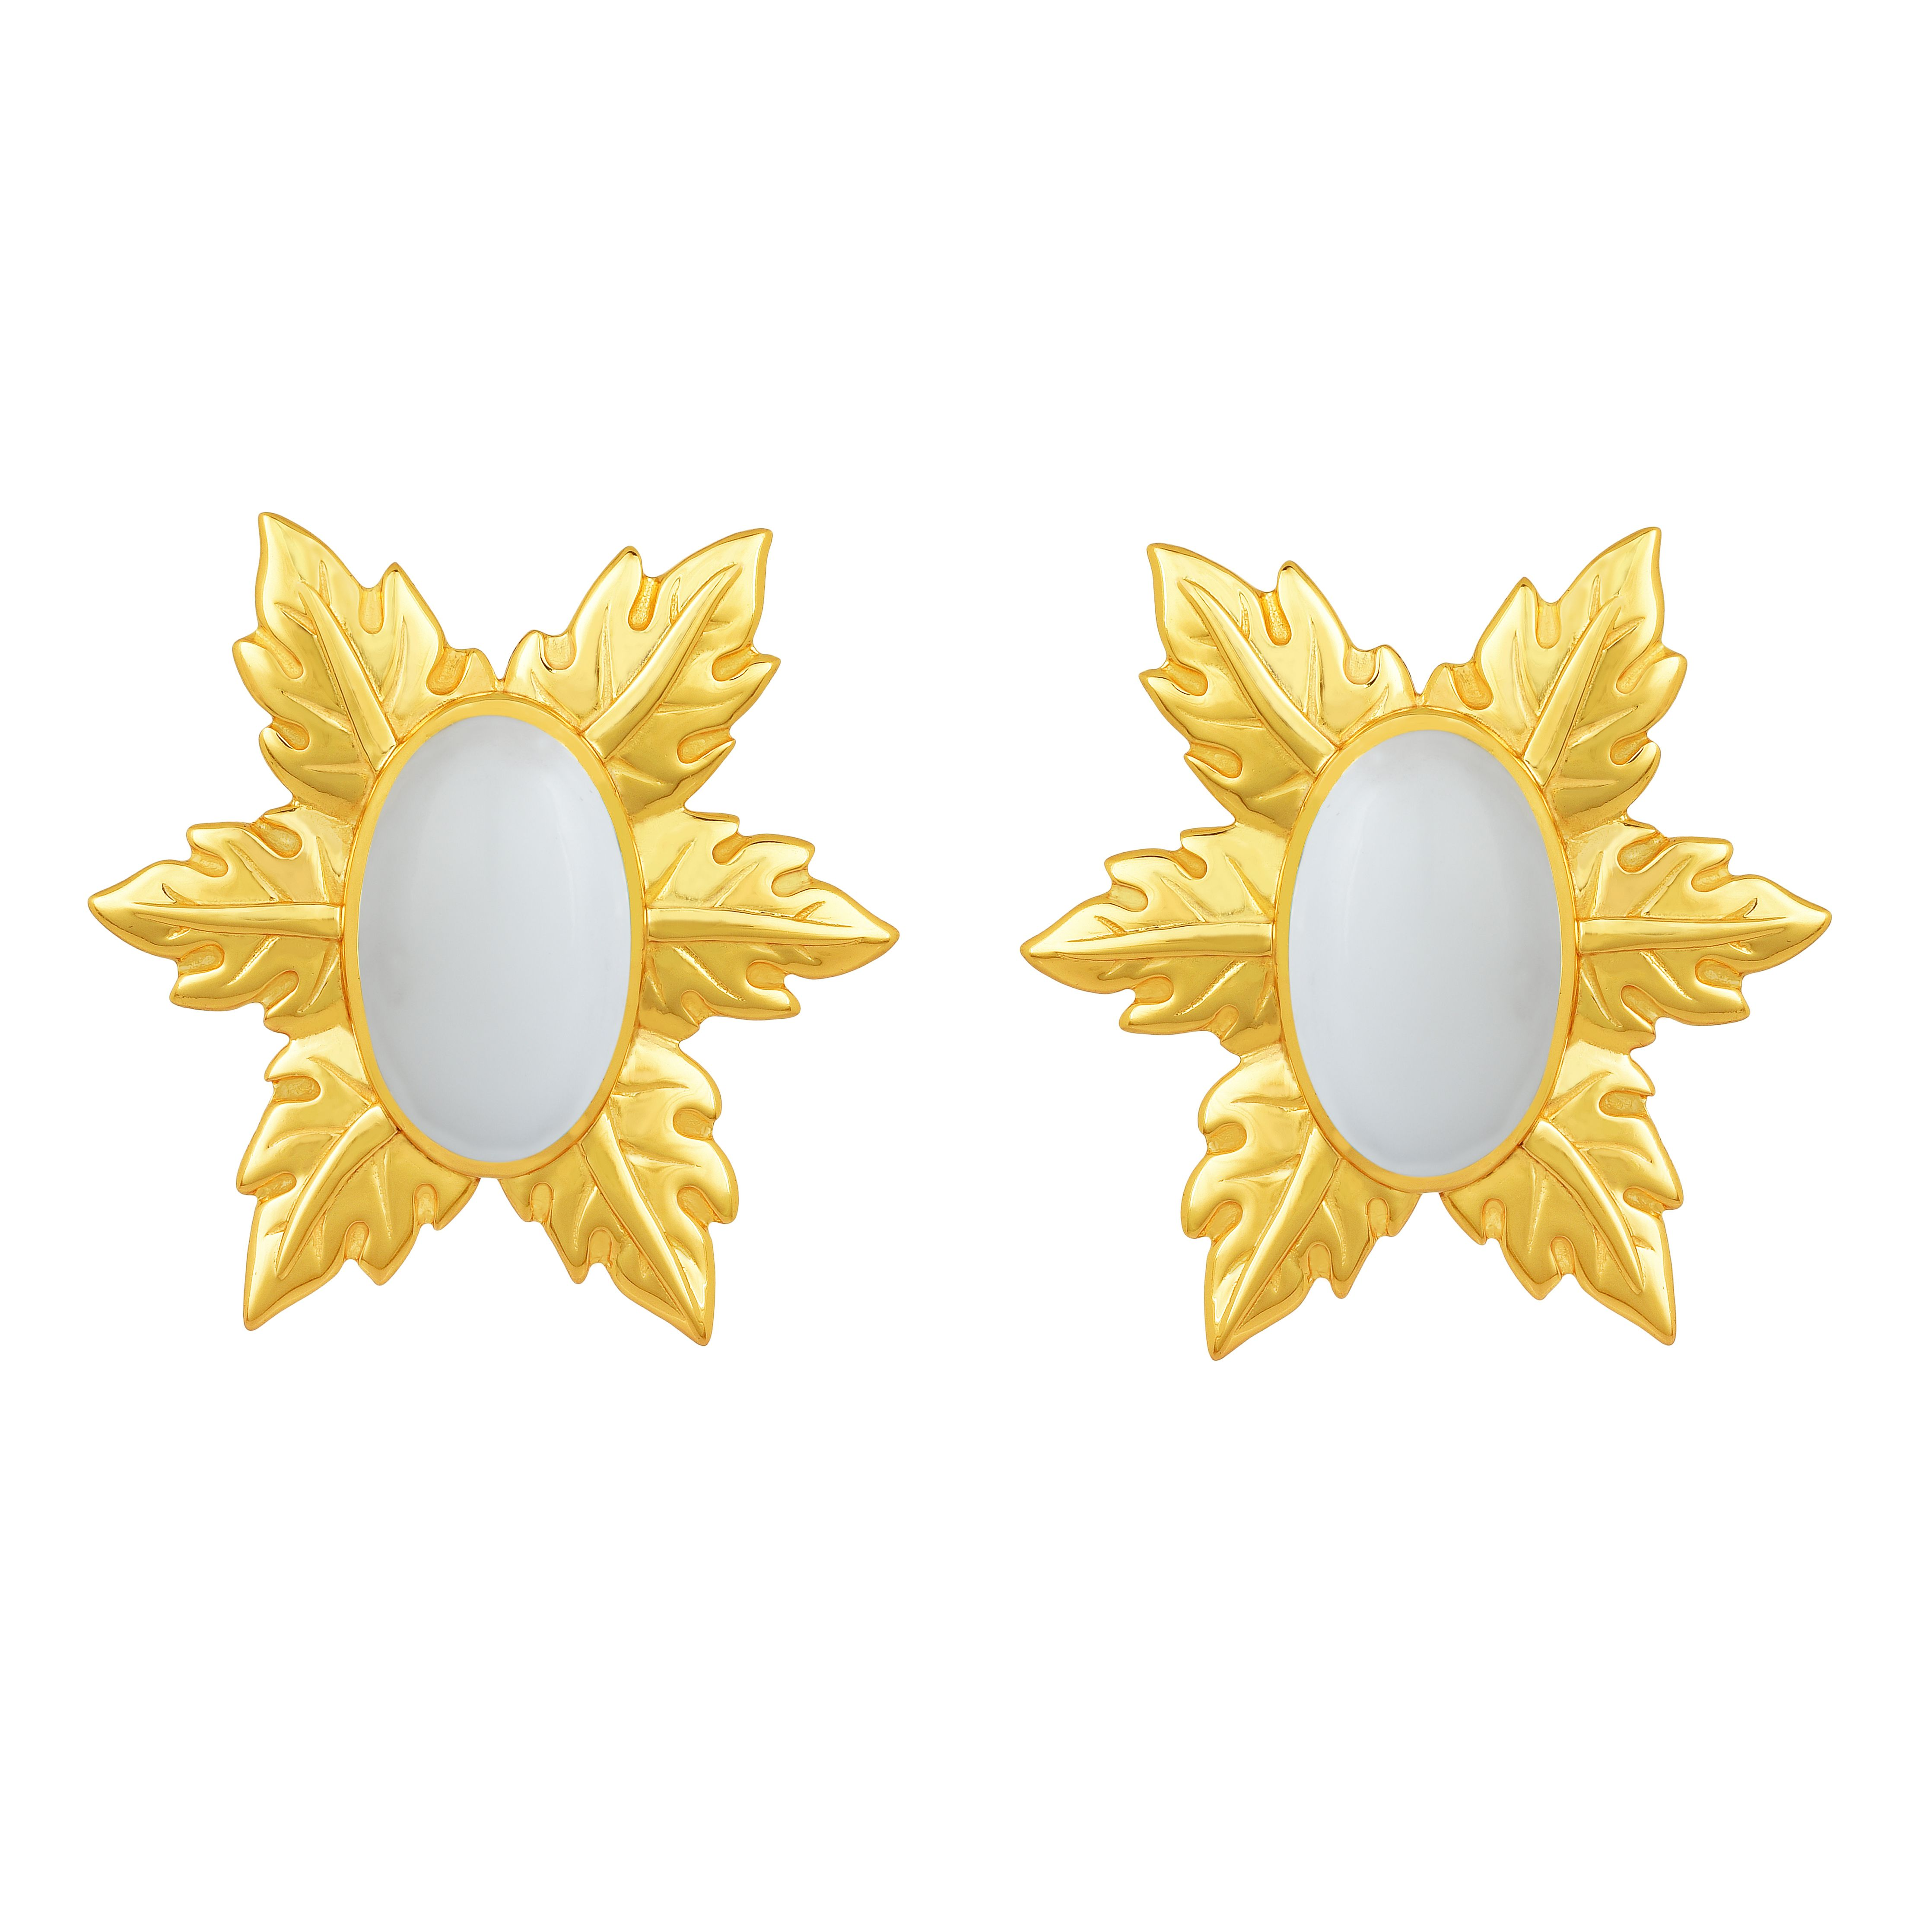 Angelina Alvarez The Floina Mini Earrings Are Plated In 24kt Gold And Inlaid With